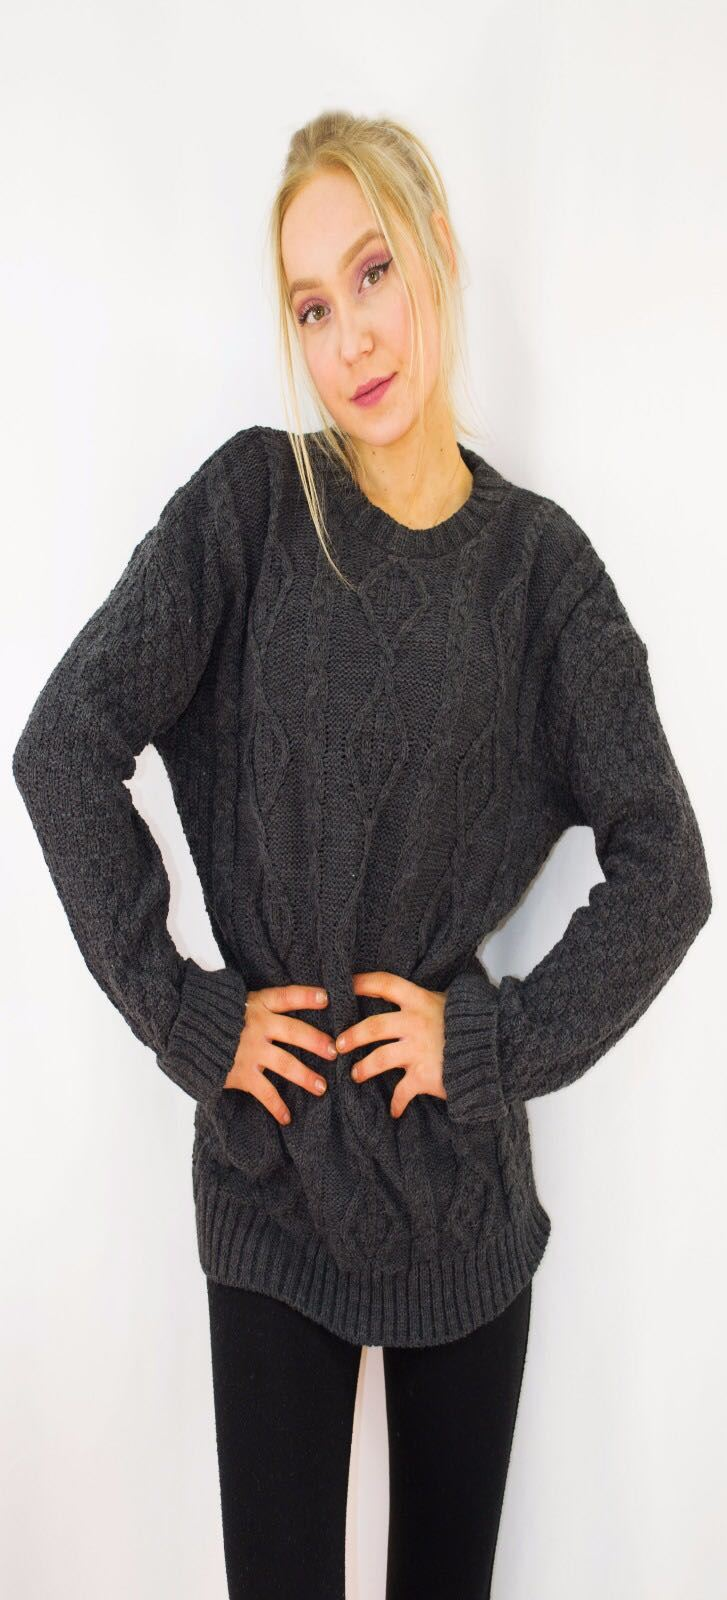 New-Ladies-Long-Manche-Chunky-Cable-Knitted-Jumper-crew-neck-hiver-Sweater-Top miniature 13